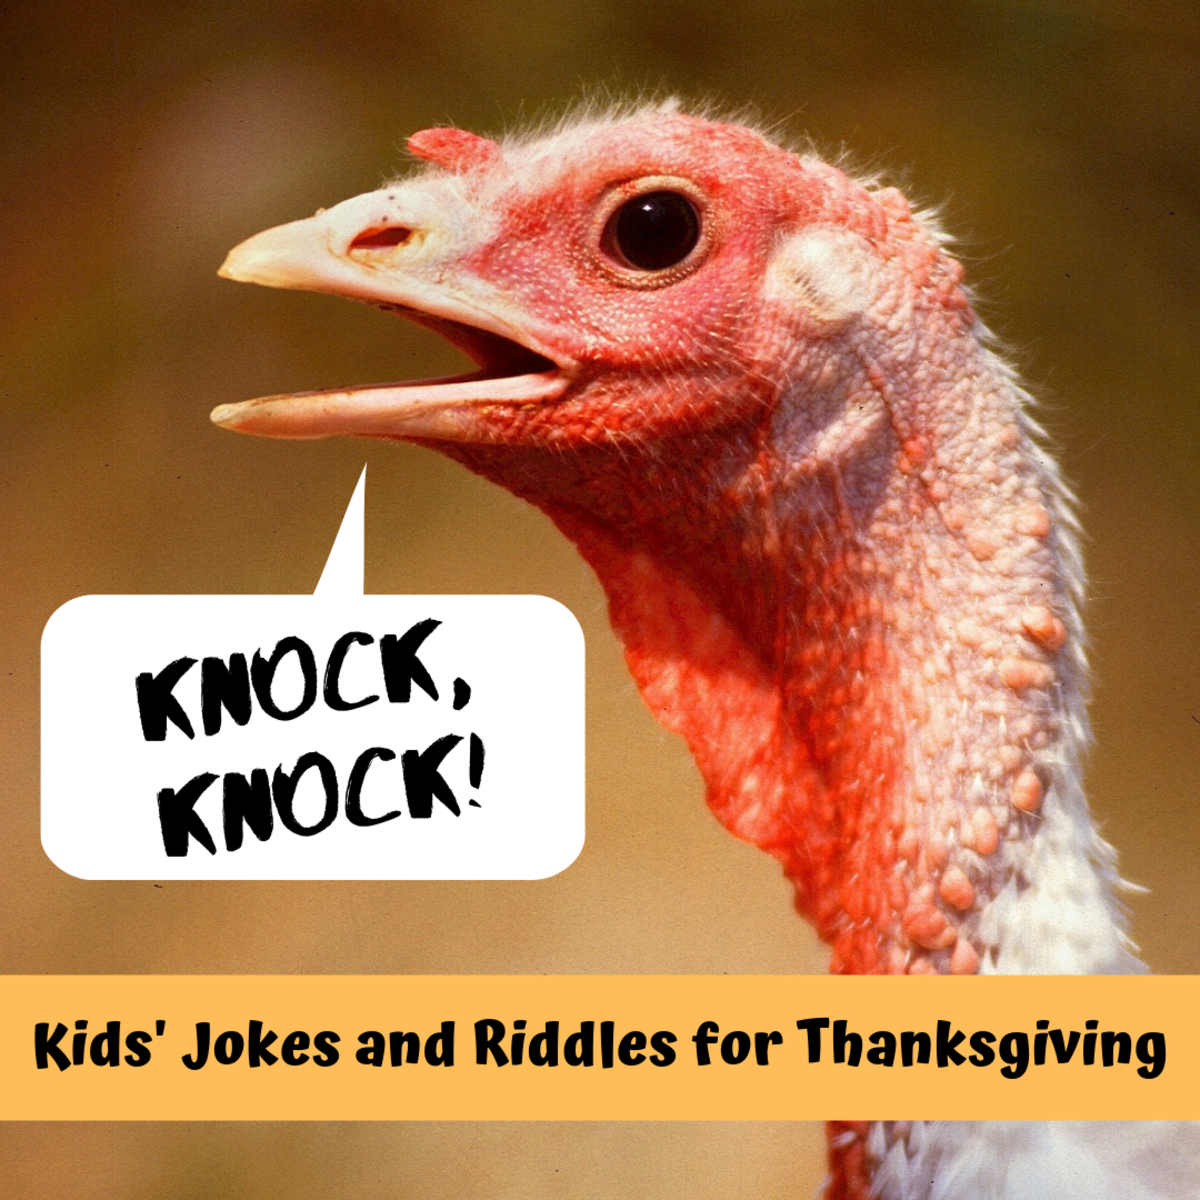 Thanksgiving Knock-Knock Jokes and Riddles for Kids